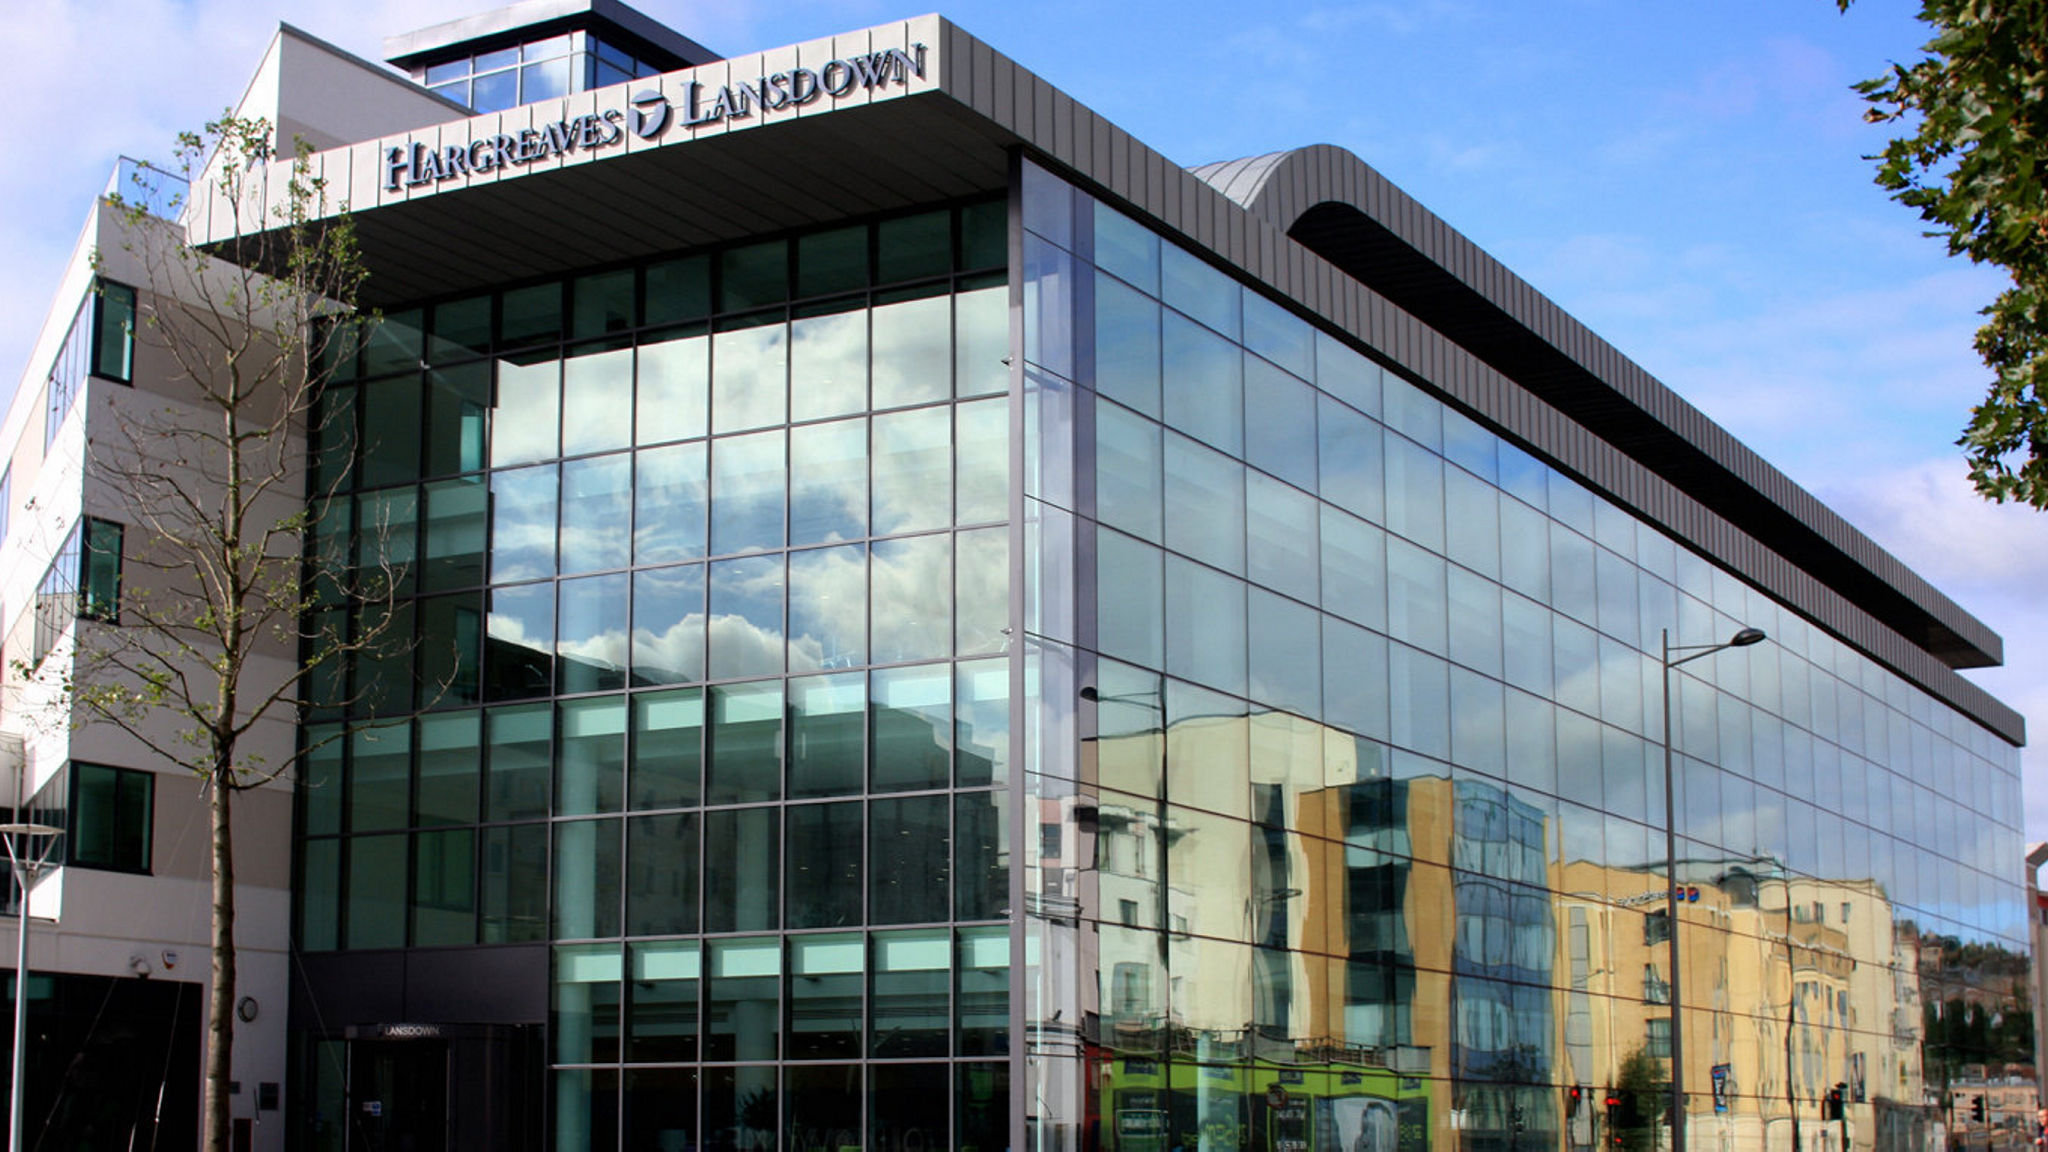 Law firm considers legal claim against Hargreaves Lansdown